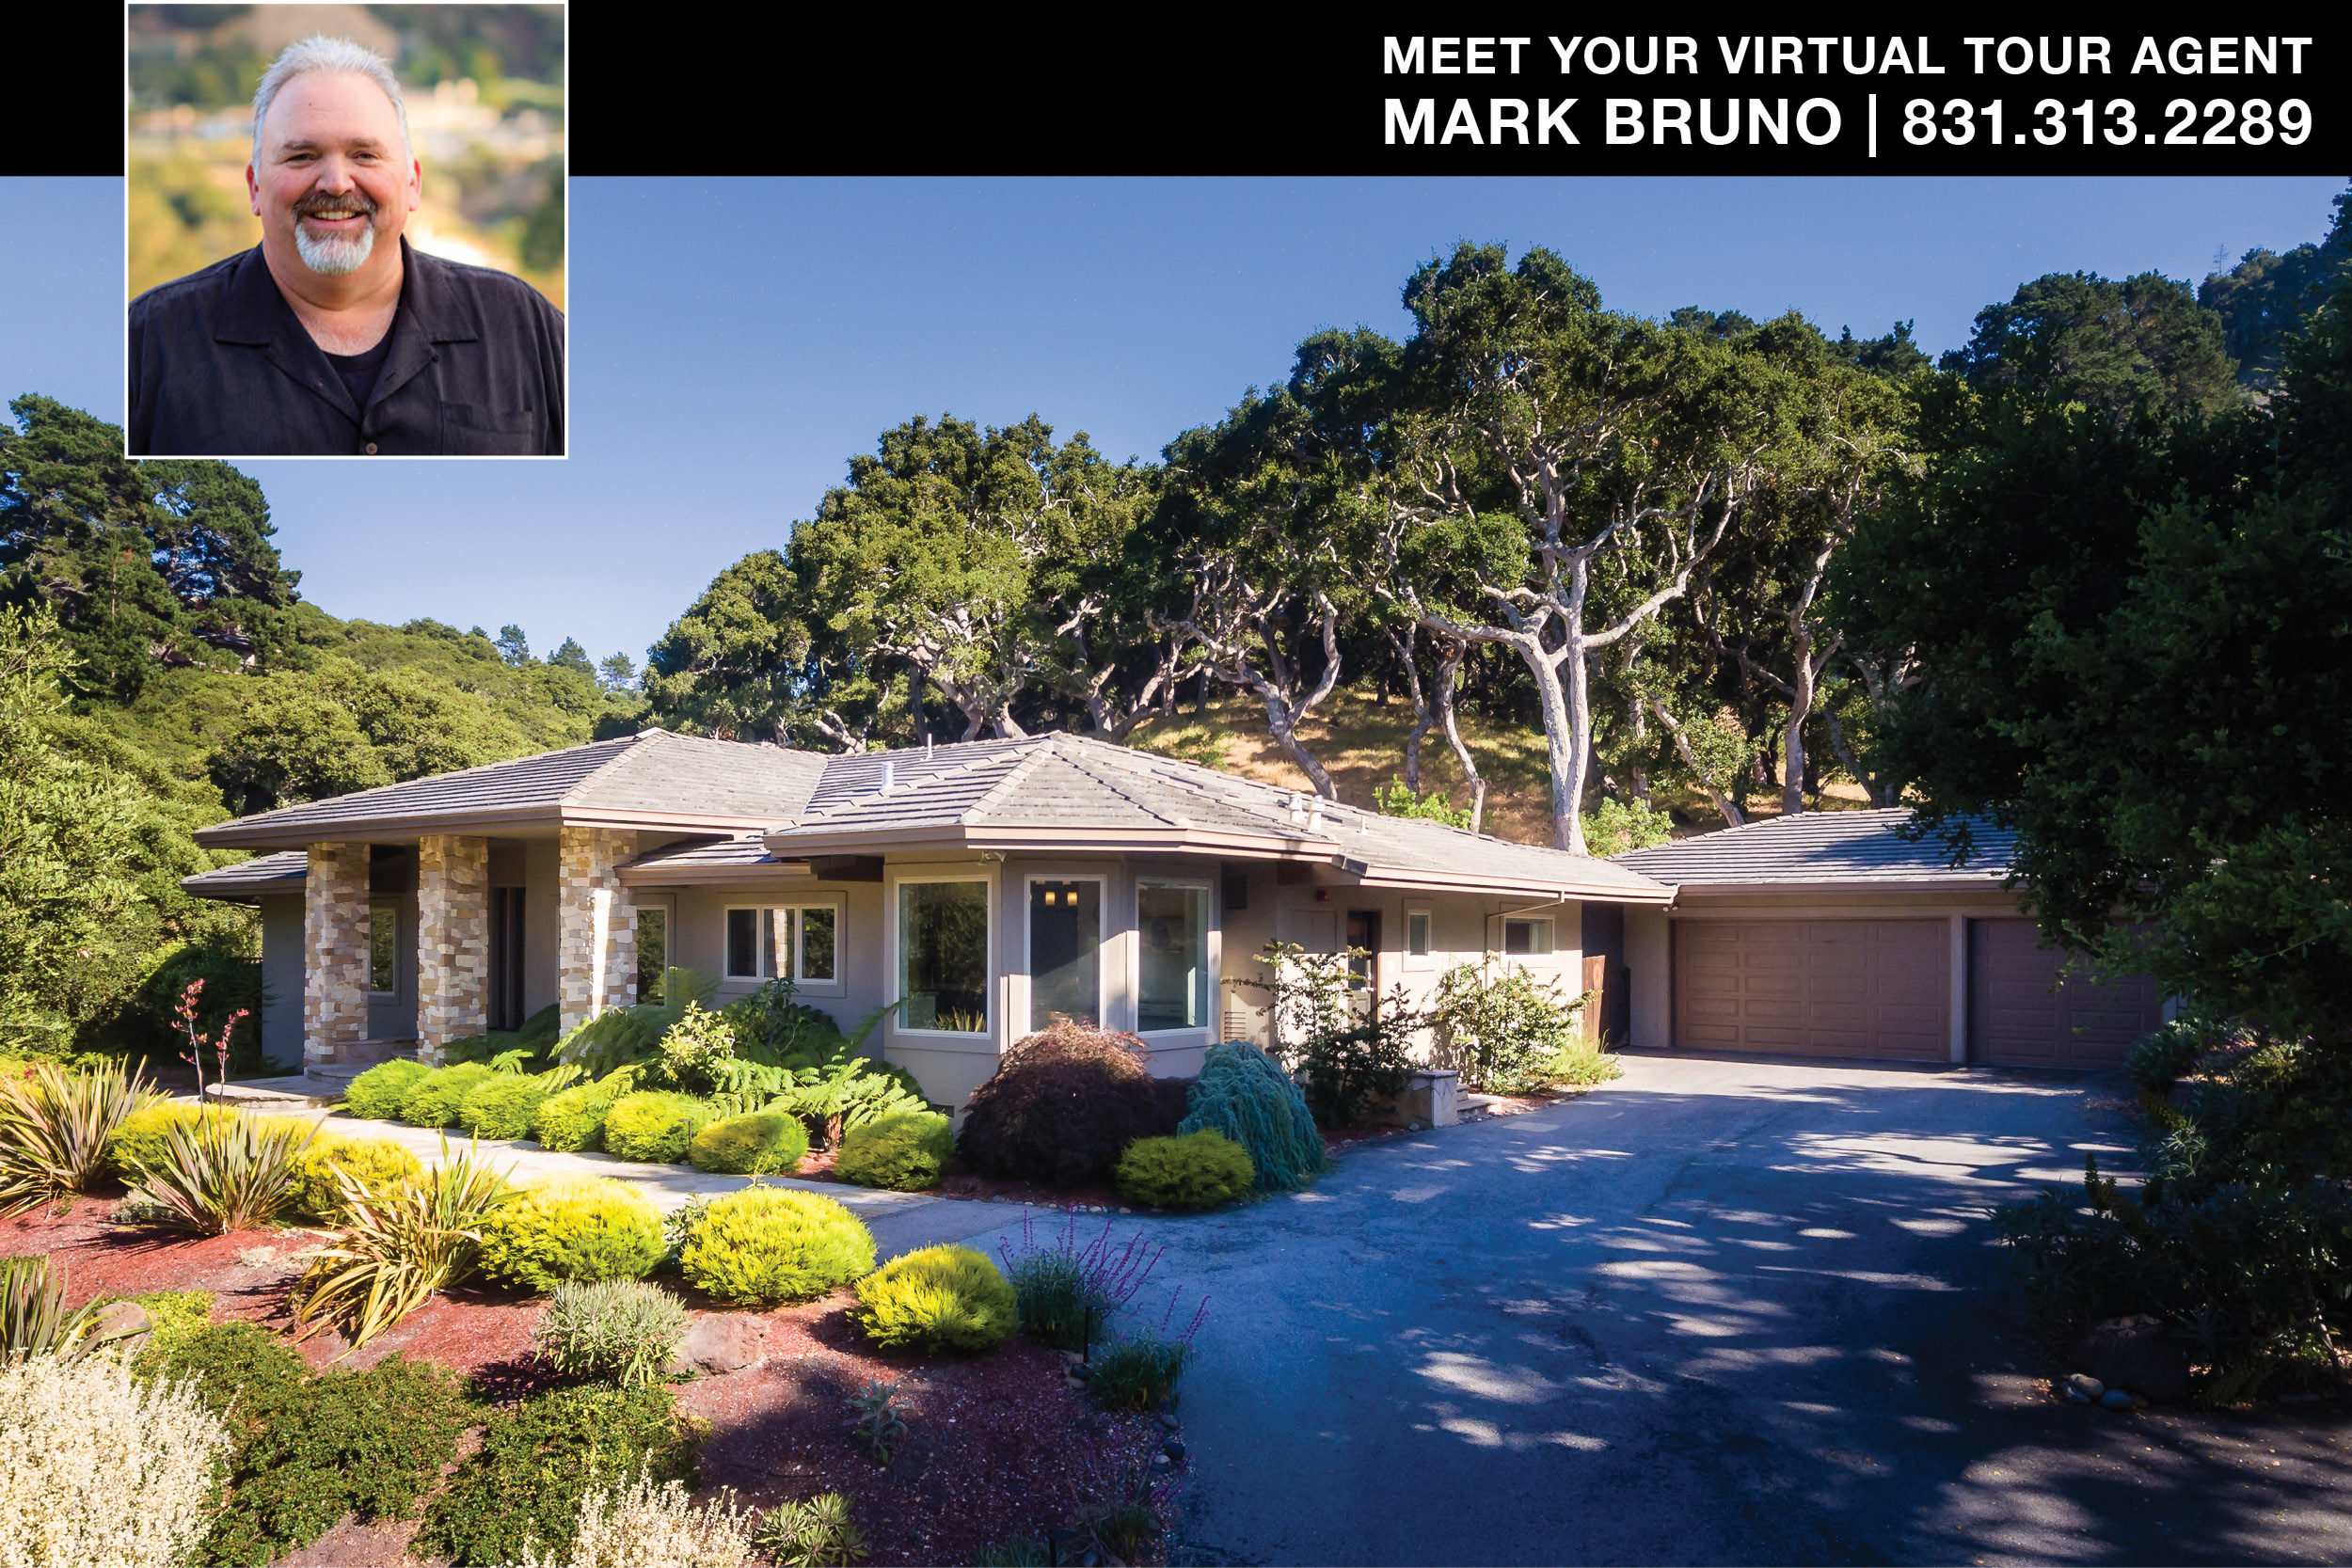 5480 Quail Meadows Drive, Carmel Valley, CA 93924 Virtual Open House